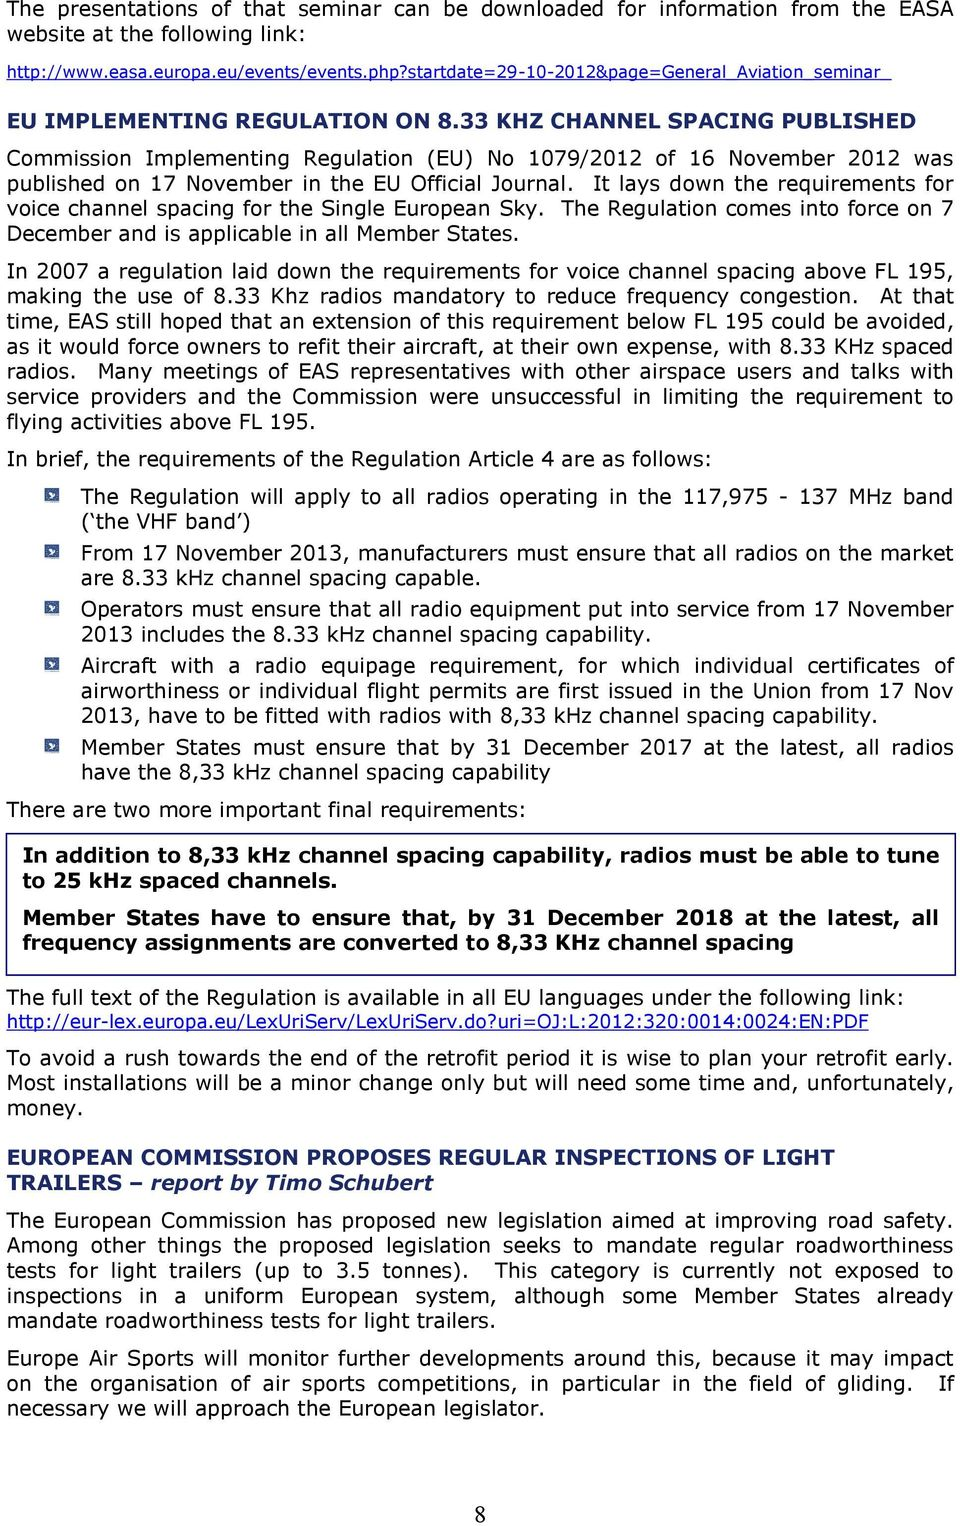 33 KHZ CHANNEL SPACING PUBLISHED Commission Implementing Regulation (EU) No 1079/2012 of 16 November 2012 was published on 17 November in the EU Official Journal.